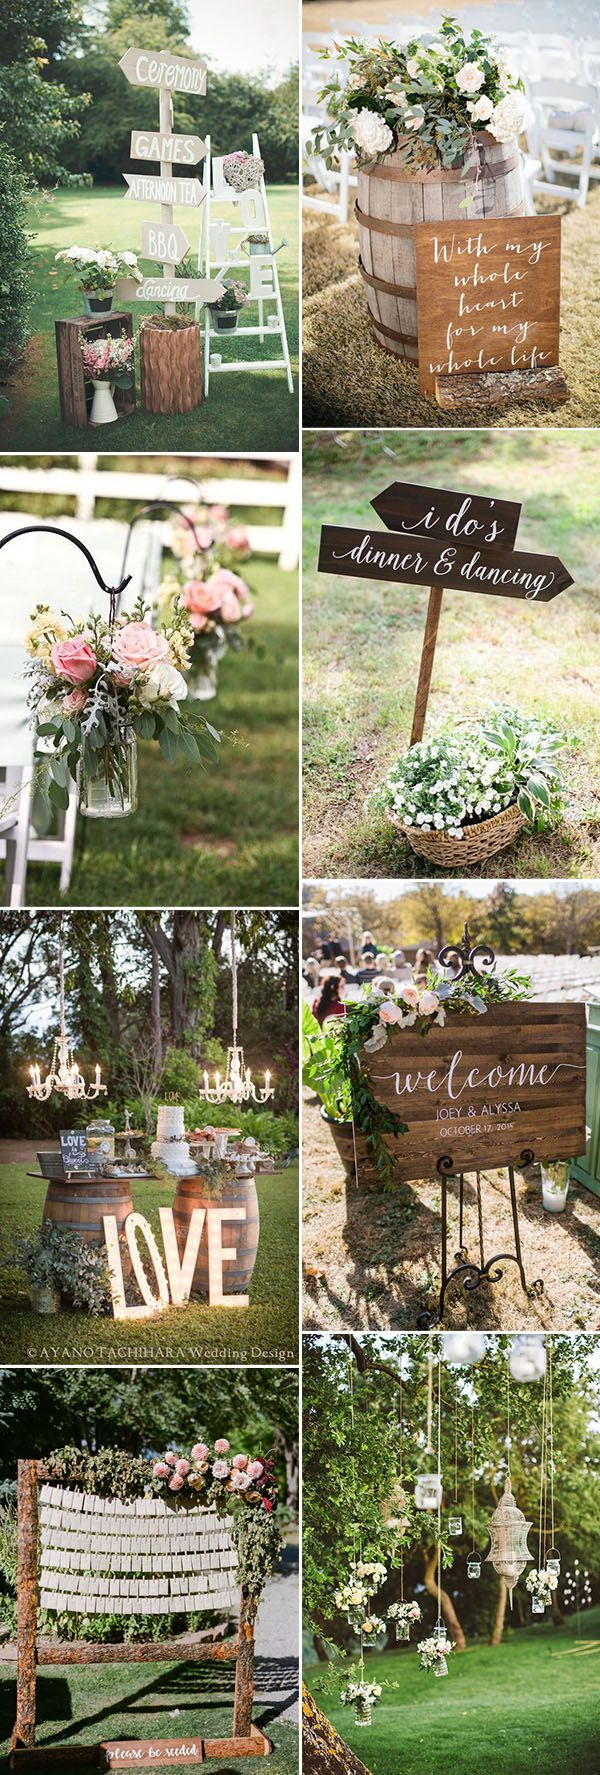 Best 25 garden weddings ideas on pinterest garden wedding decorations outdoor wedding - Diy garden decoration ideas ...